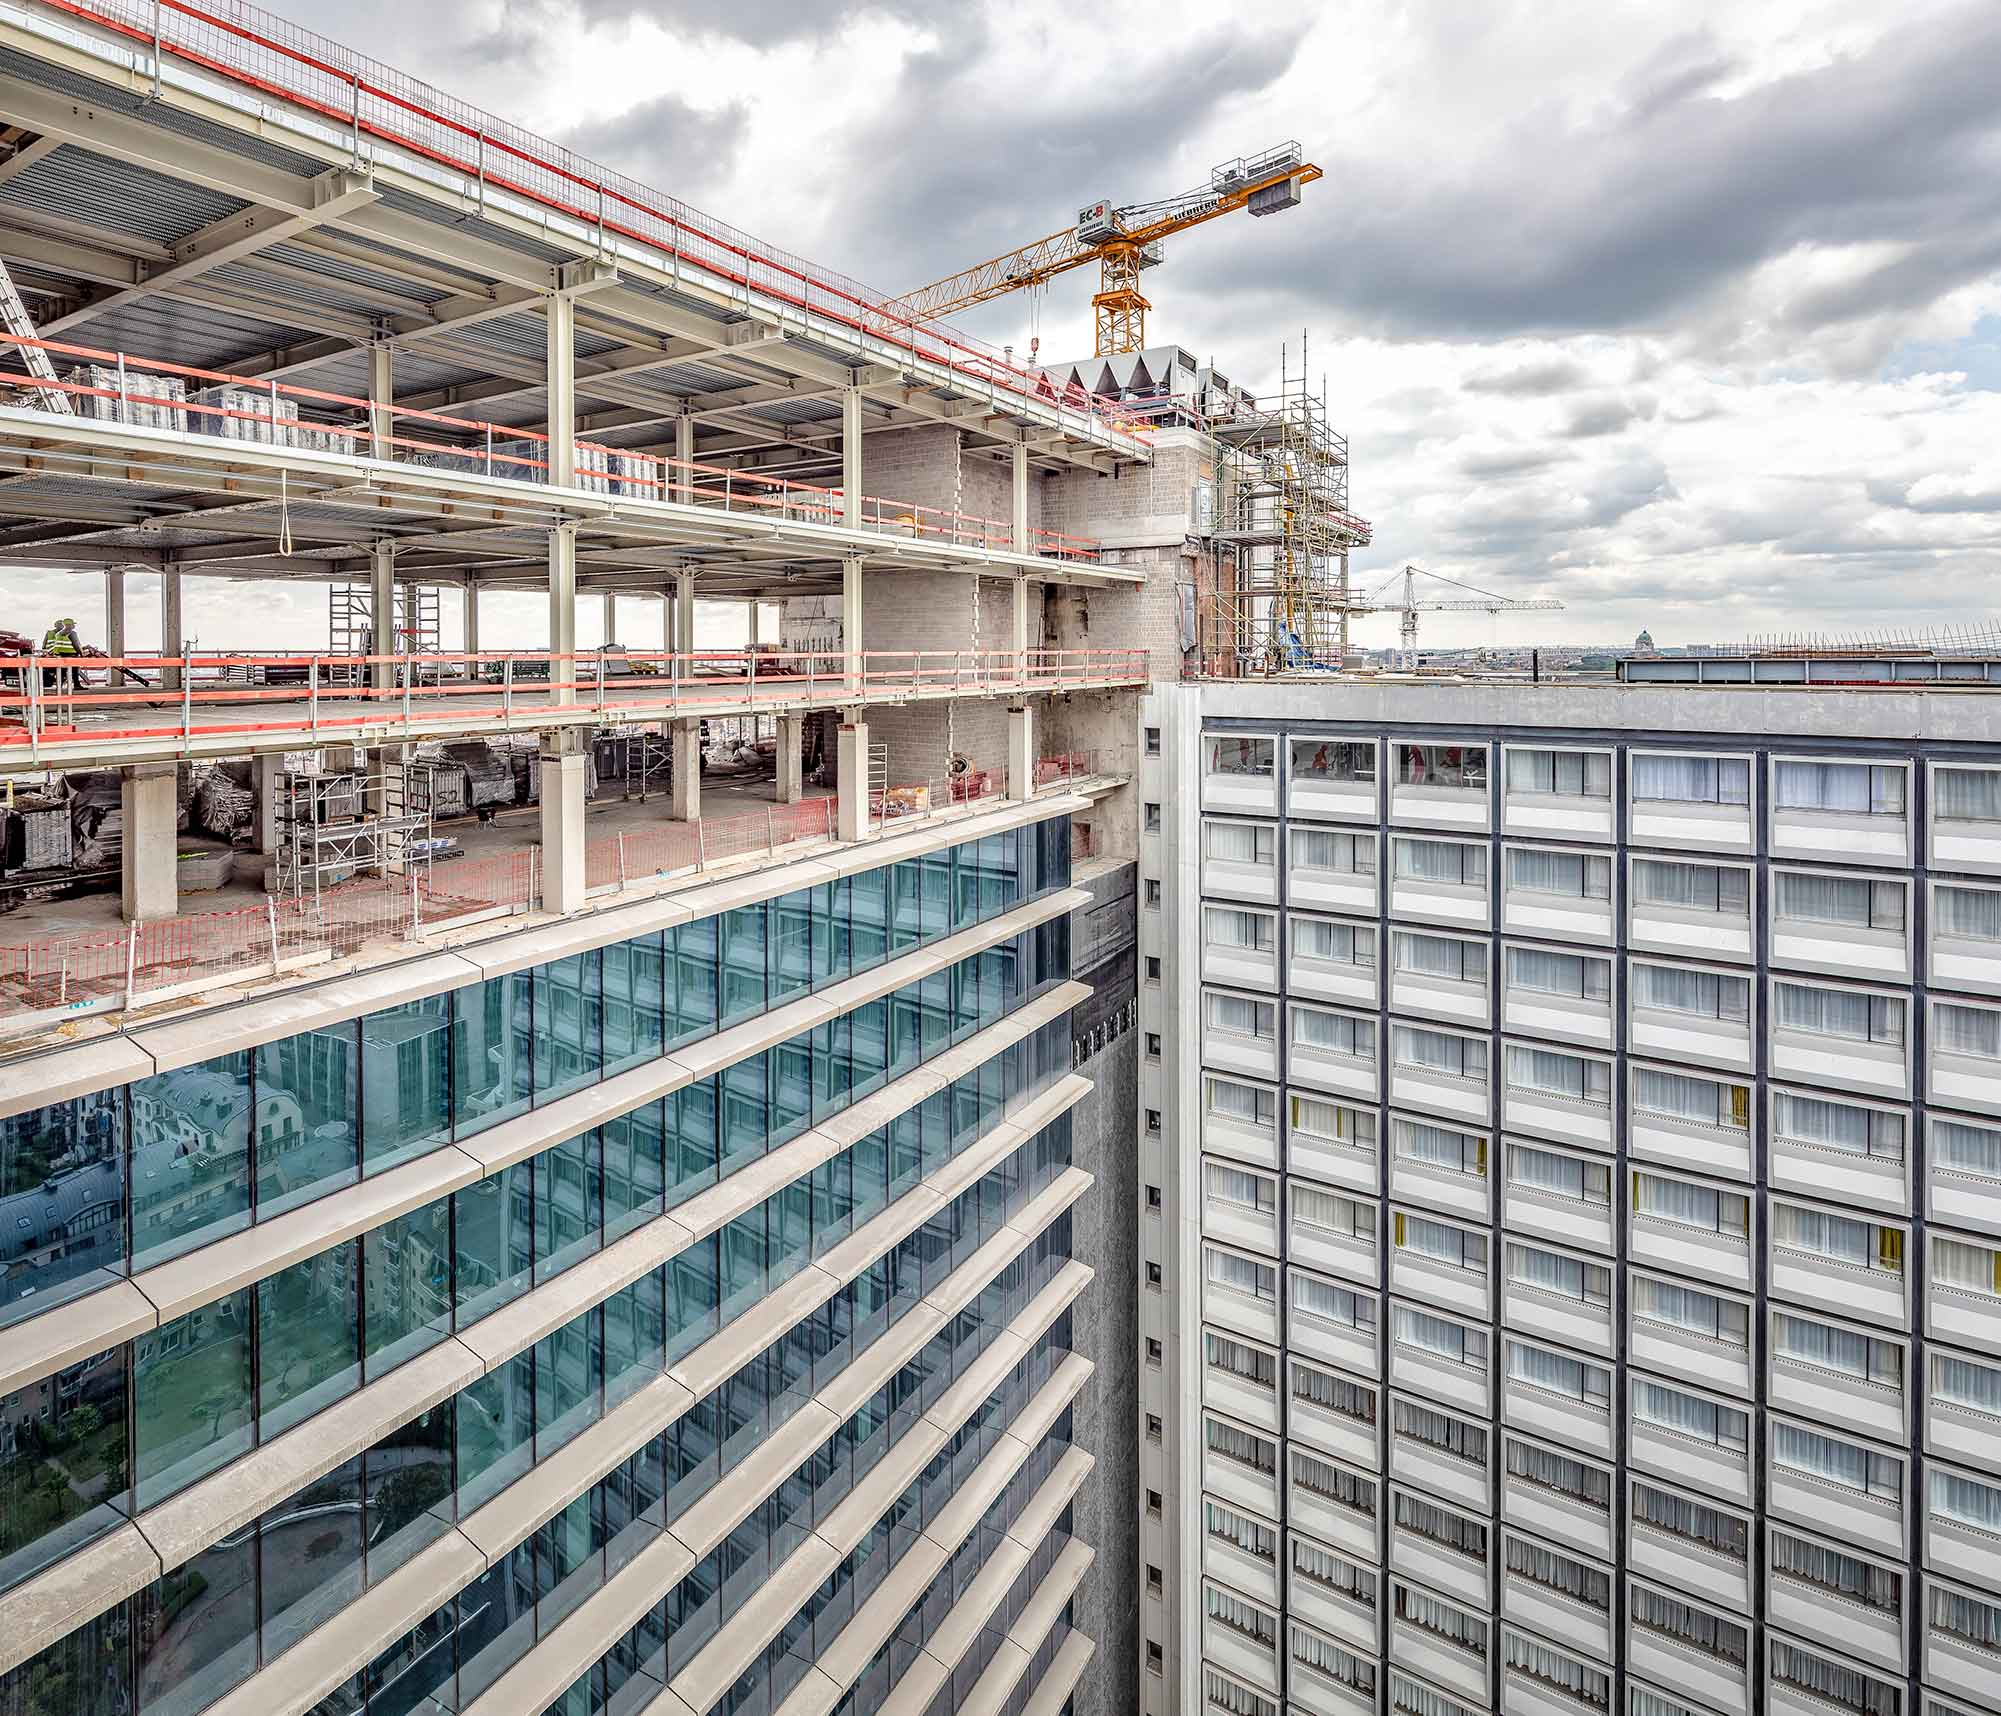 Construction_photography_pascal_vandecasteele35.jpg